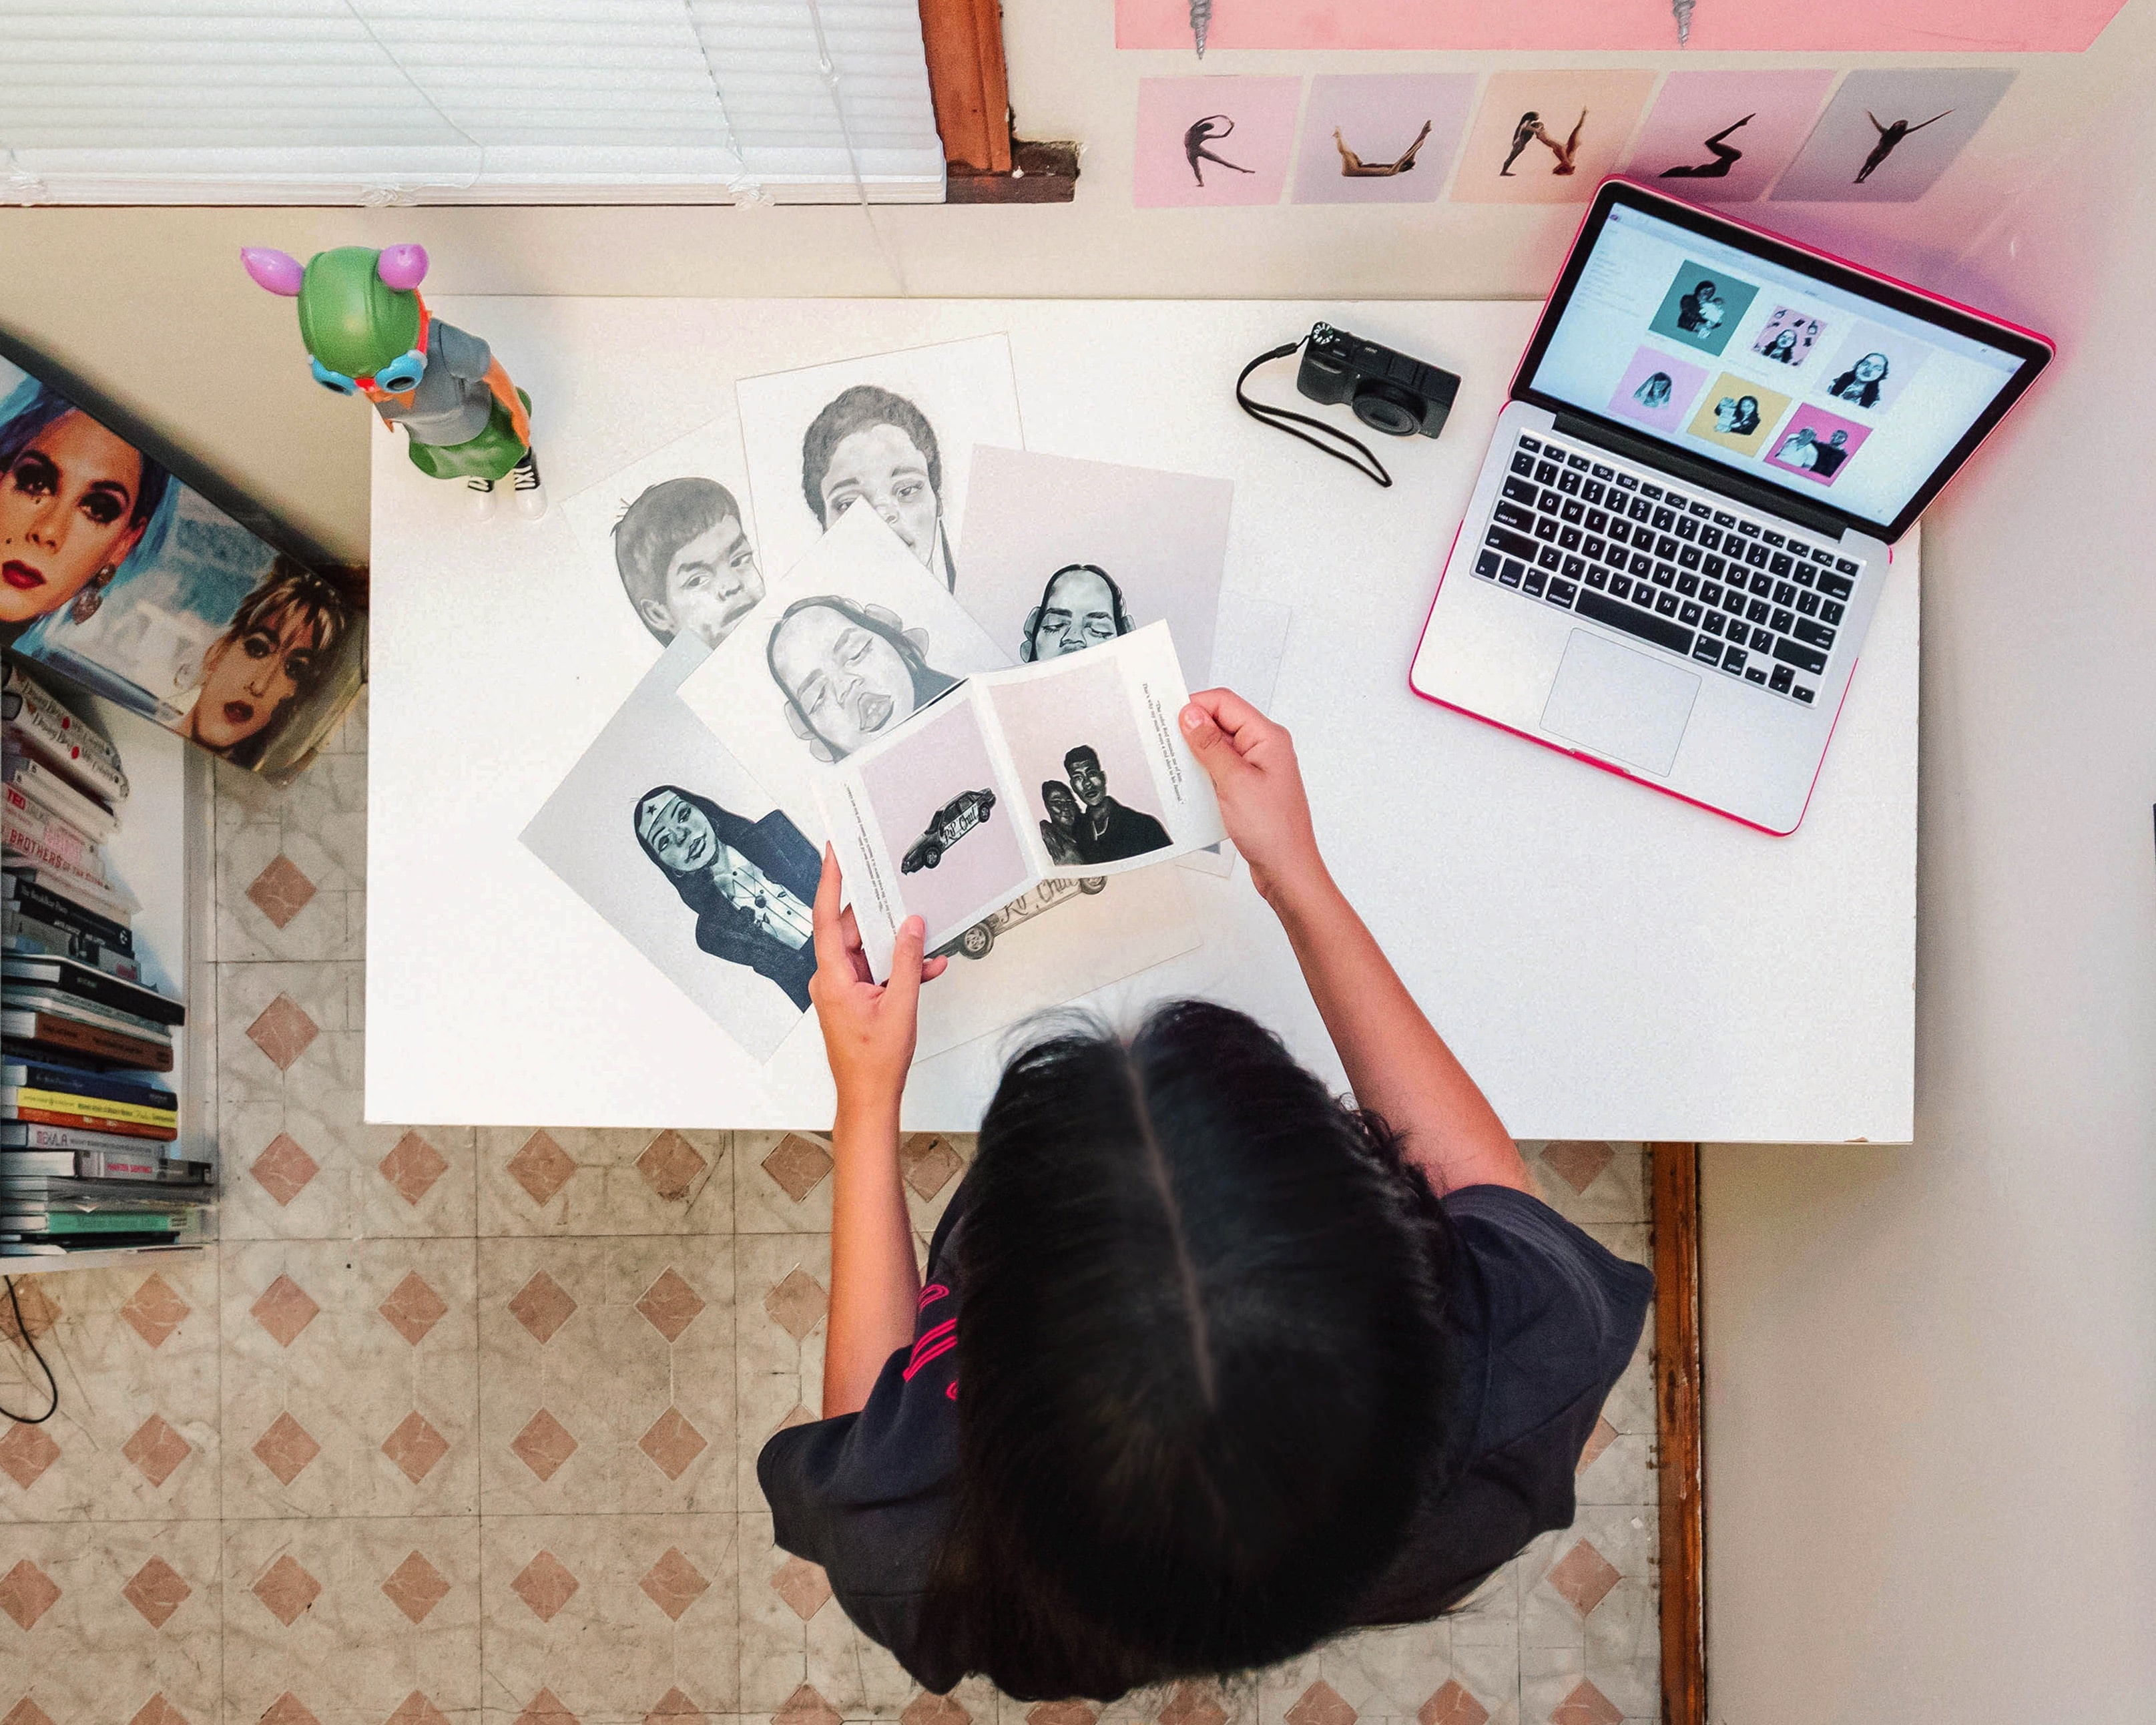 6 Tips For Building an Art Career From Chicana Artist Runsy